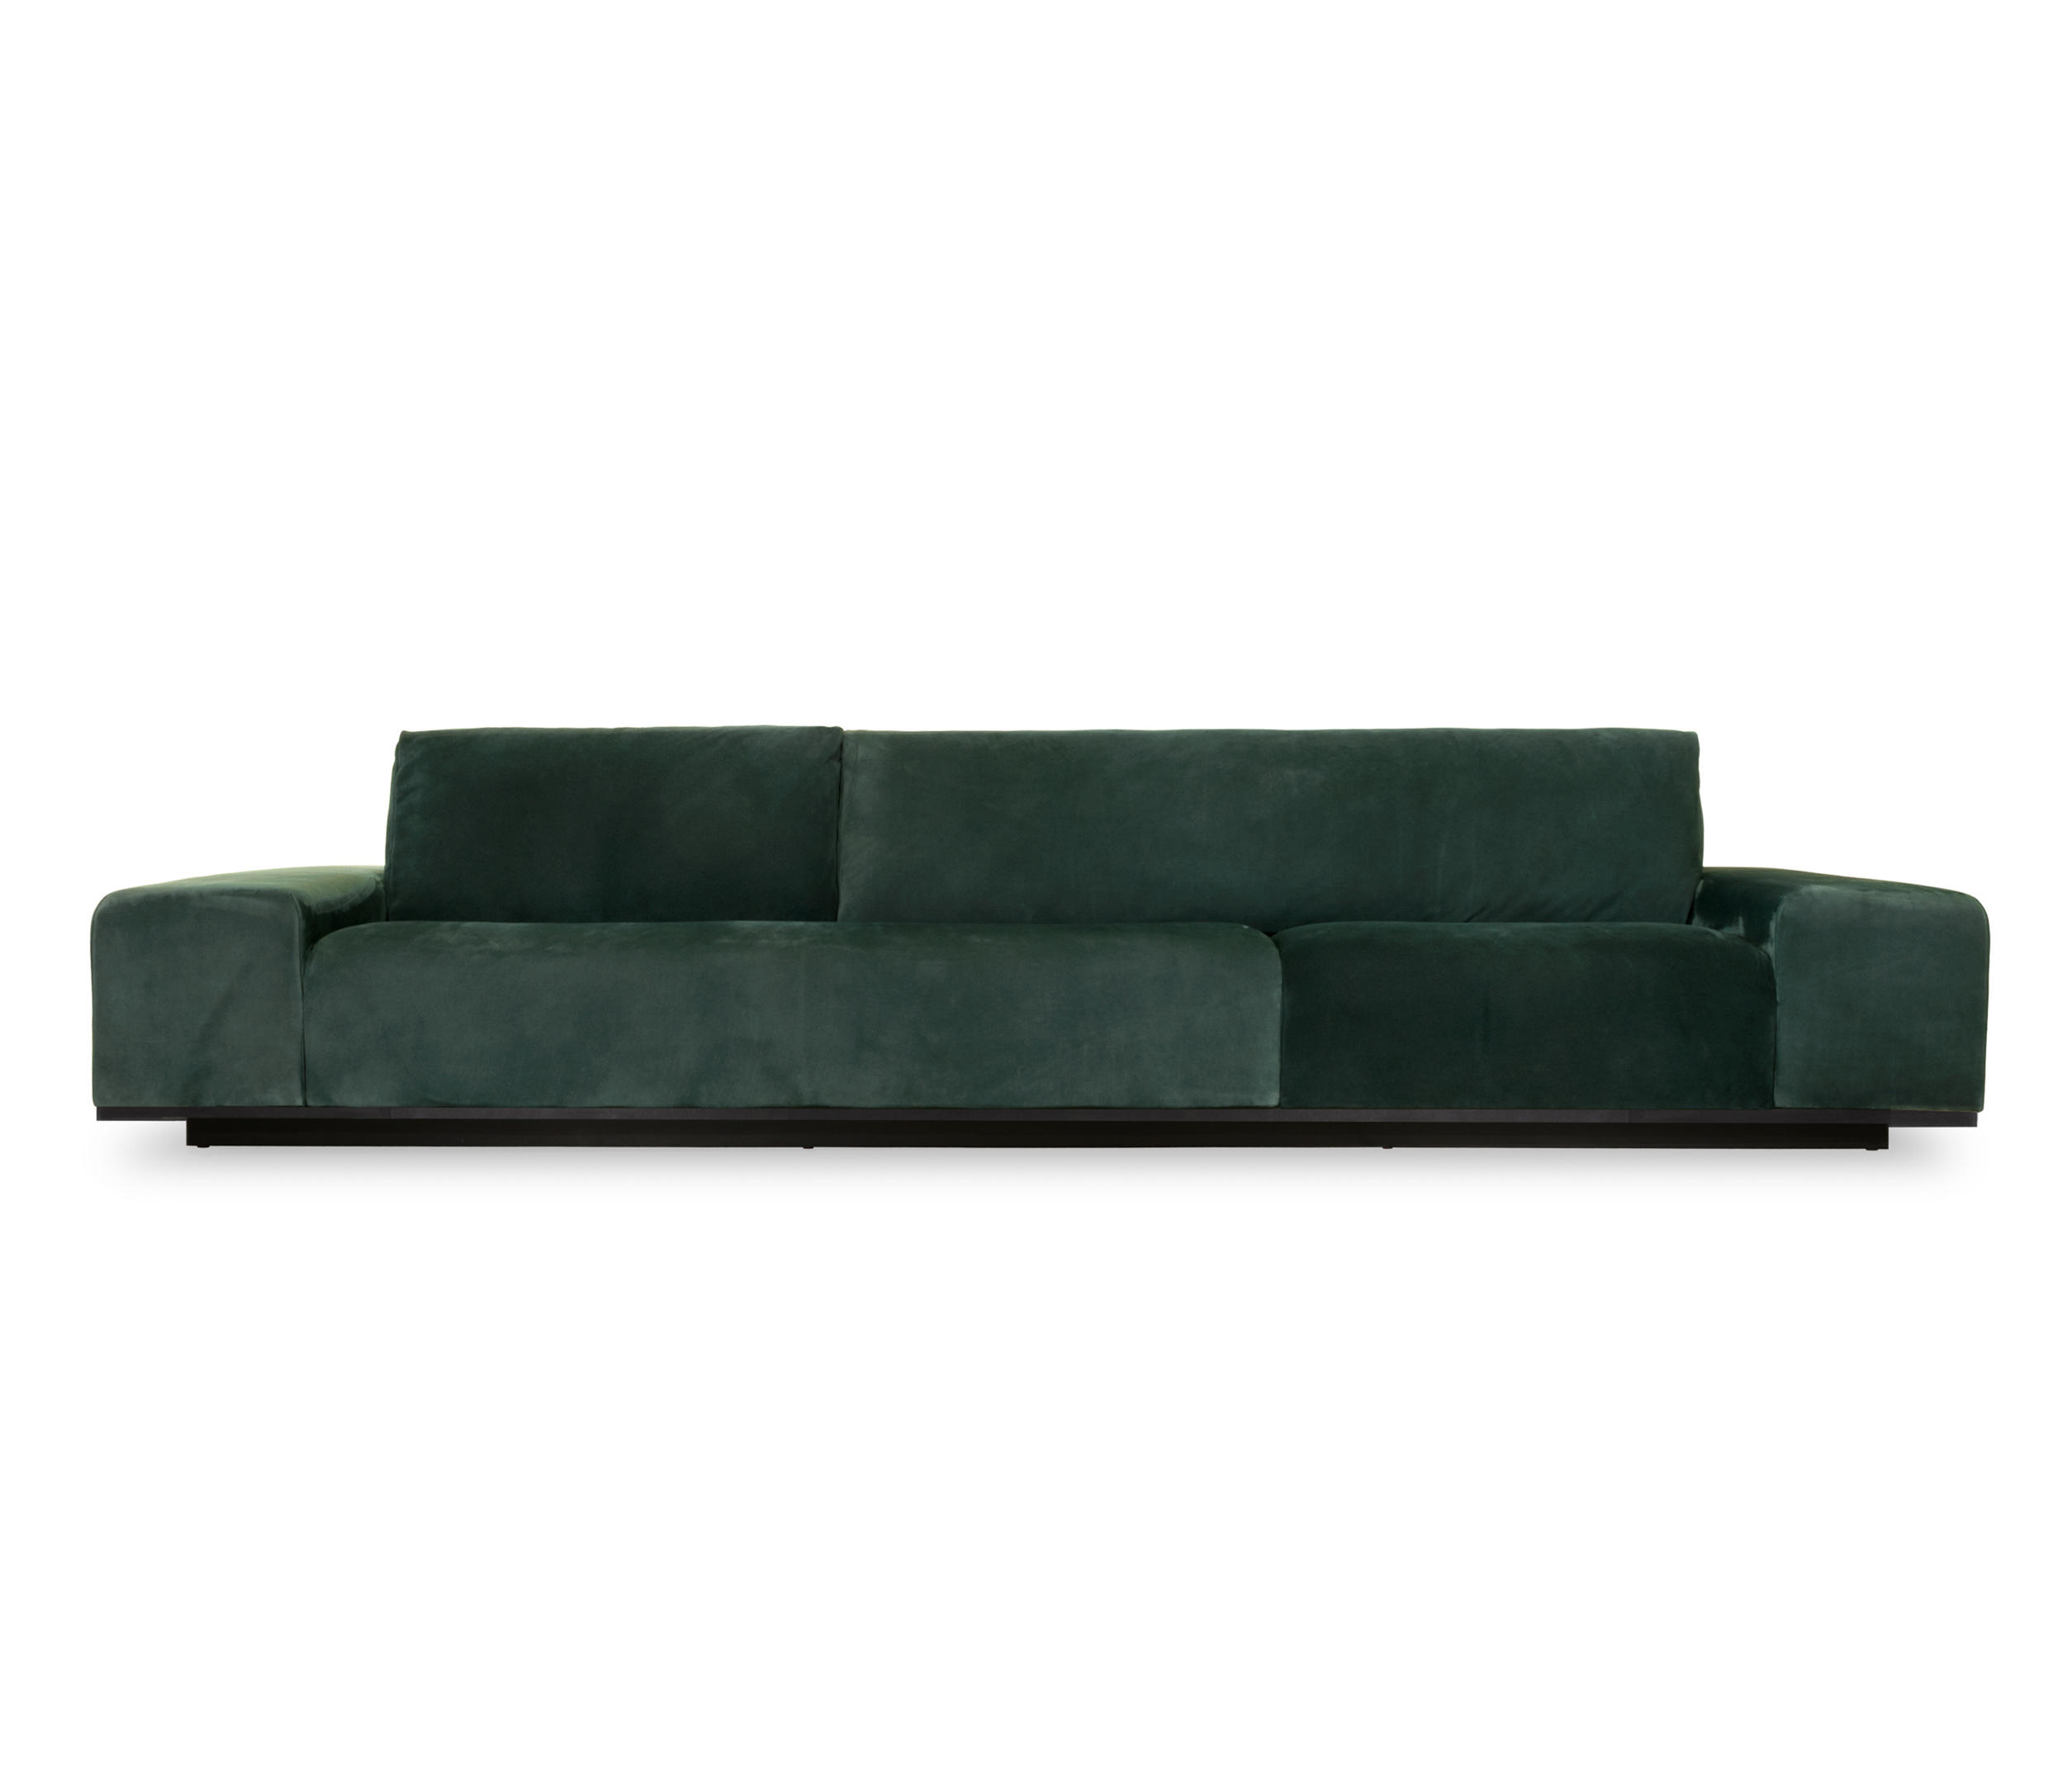 monsieur sofa lounge sofas from baxter architonic. Black Bedroom Furniture Sets. Home Design Ideas